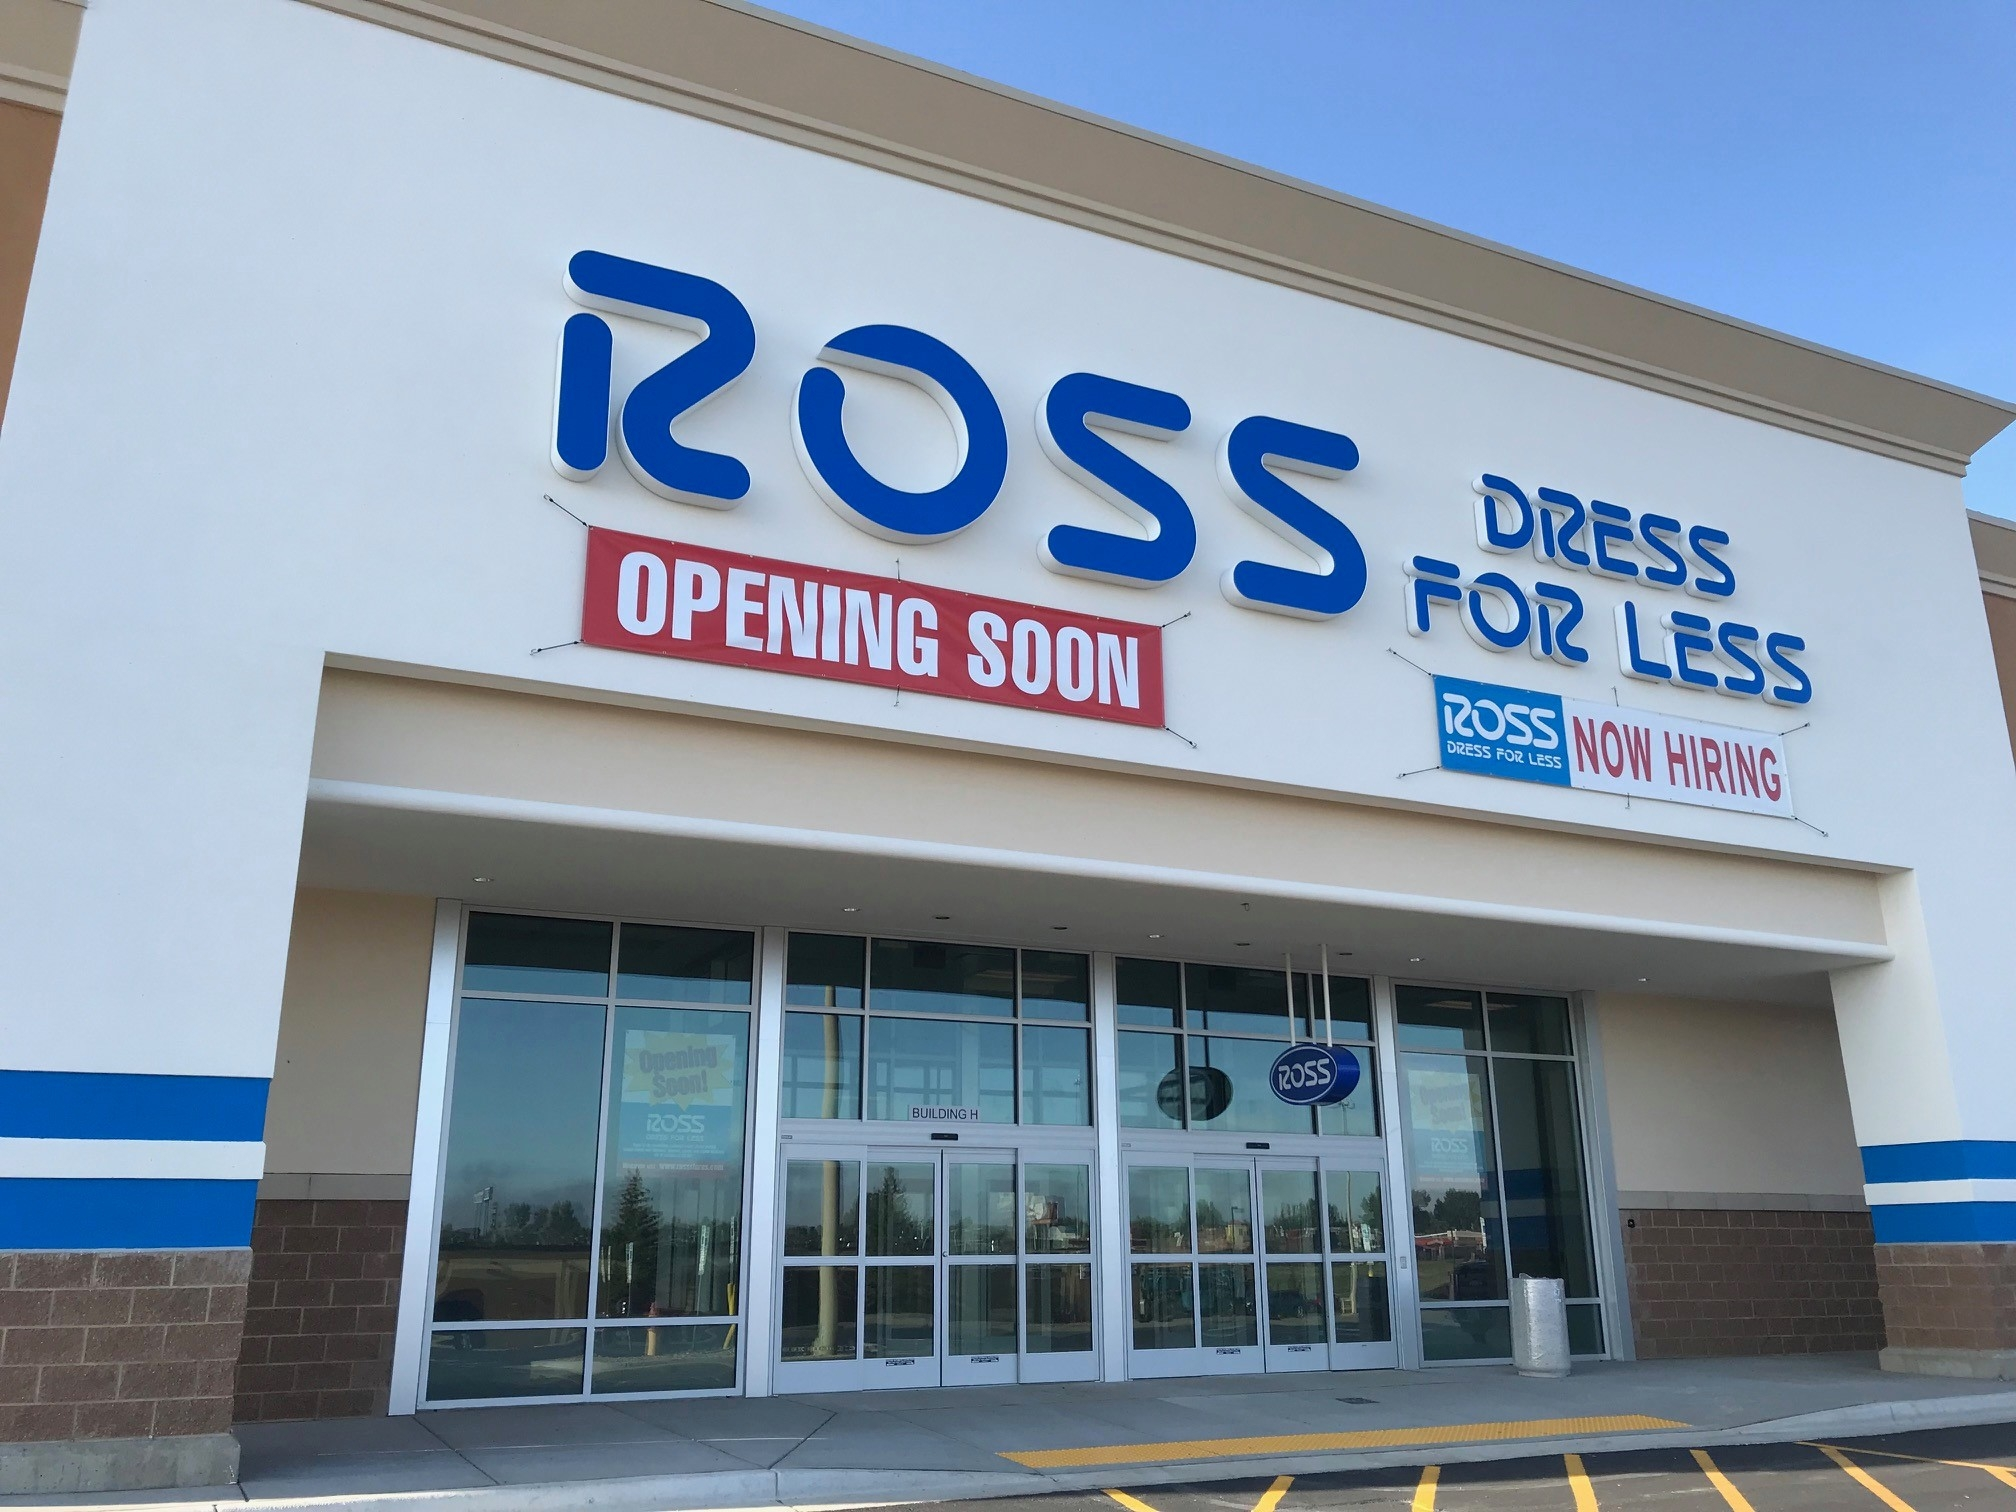 Ross Dress for Less.jpg